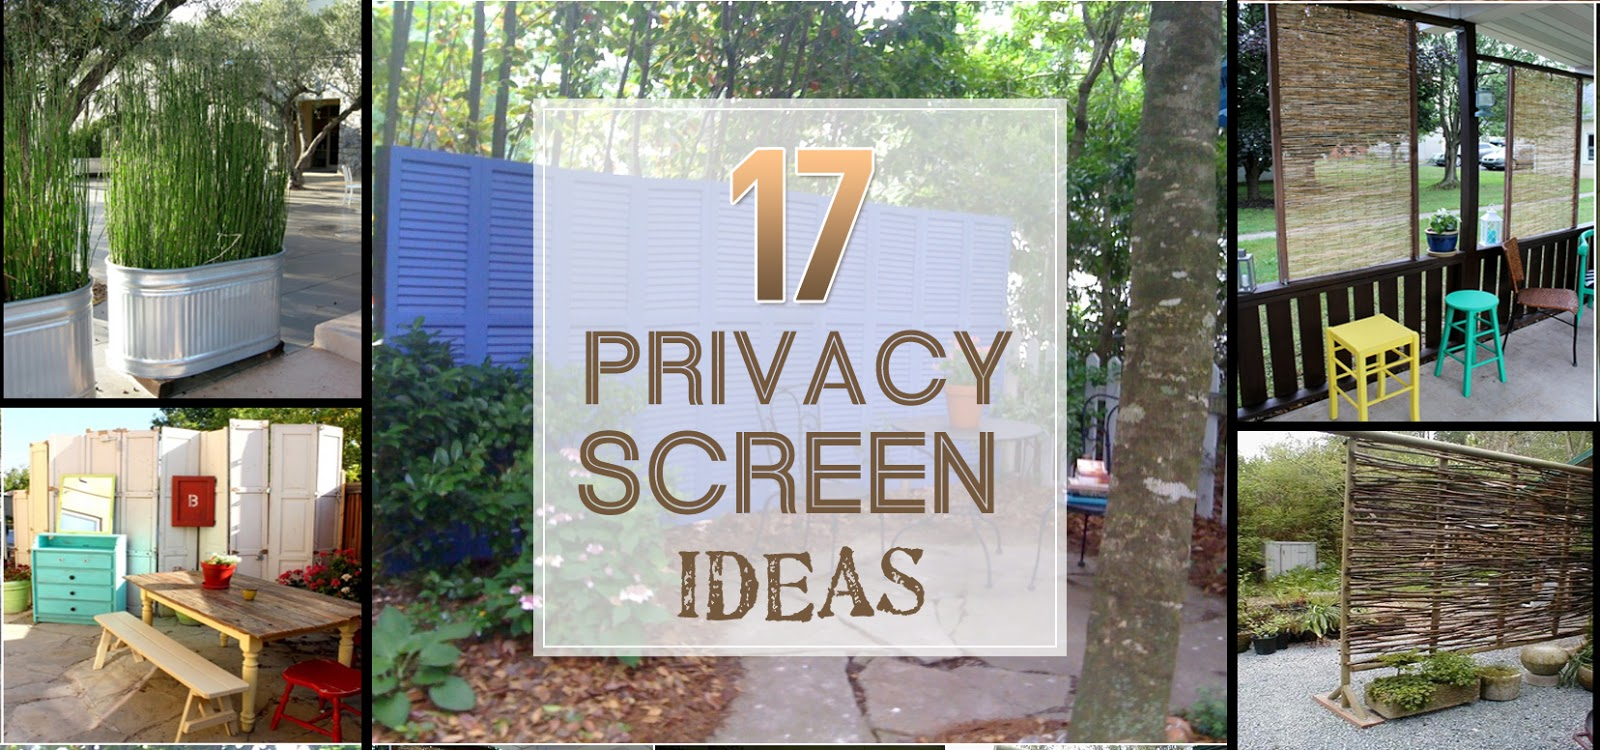 Back yard screening ideas for Backyard screening ideas